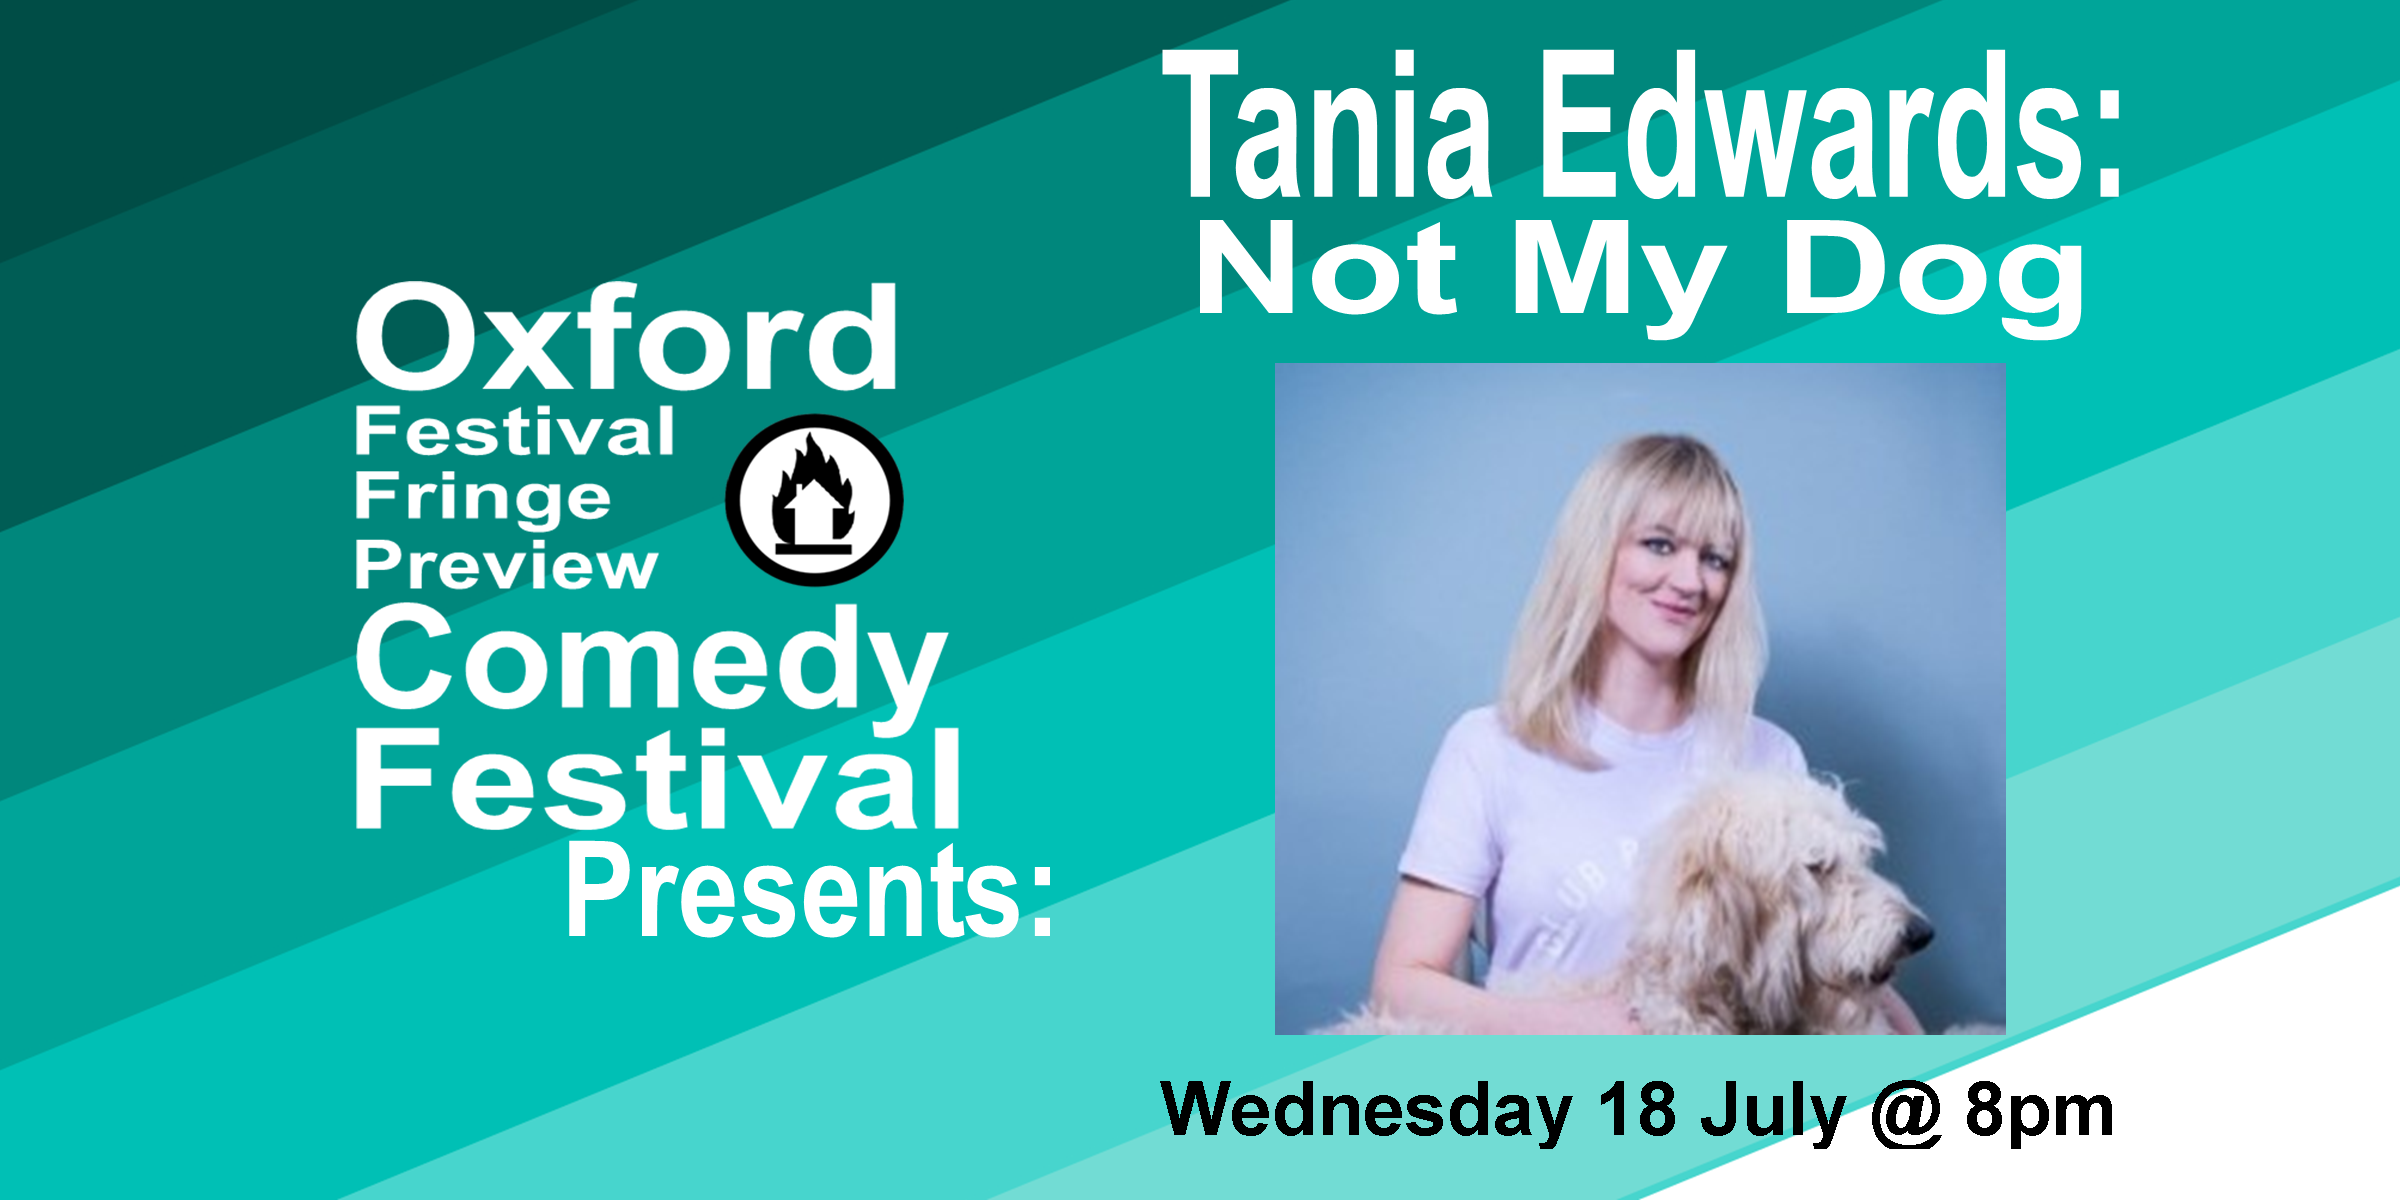 Not My Dog is a hilariously dark exploration of modern life and our need to (mis)represent it from stand-up Tania Edwards who has written for Mock the Week (BBC Two), Stand Up for the Week and Twit of the Year (Channel 4). Tania recently supported Katherine Ryan on tour. Her scintillating one-liners were crowned top jokes of the Fringe (Mirror), James Acaster's Best Edinburgh Fringe Picks (Guardian), and Glamour Magazine's Top Female Comics. 'Cuts daggers with sharp one-liners' (Glamour Magazine). 'Fantastically seamy side to the material... also great with audience banter... sublime... brilliant' ( Chortle.co.uk ).  Doors at 7:30/Show at 8pm  60 minutes    Get Your Tickets Here!